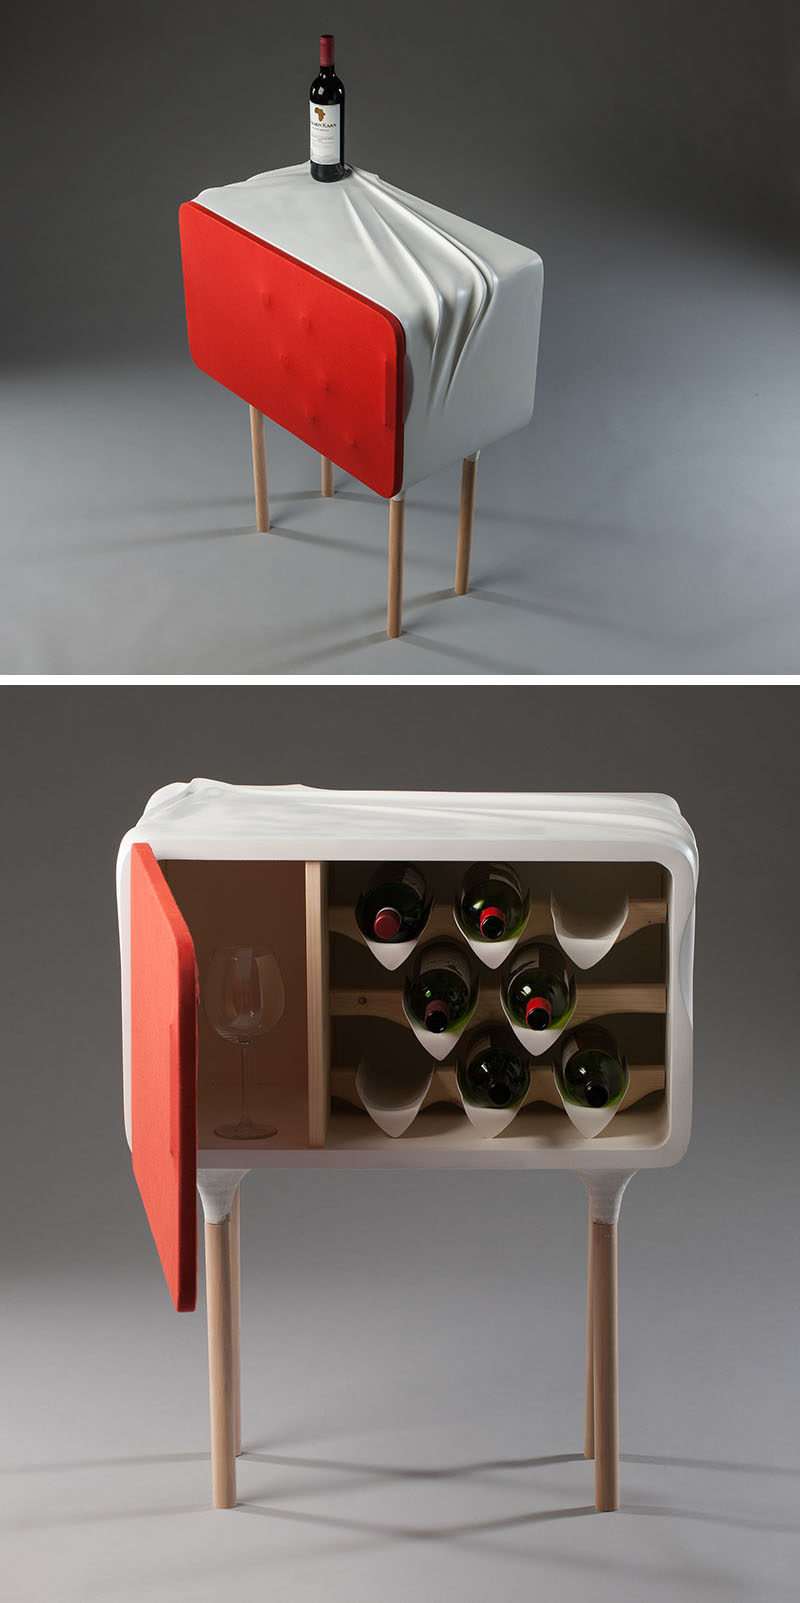 Berlin-based designer Santiago Rubio has created a modern and mini wine cabinet that can hold 8 bottles of wine and 6 glasses. #WineStorage #WineCabinet #Wine #Design #Furniture